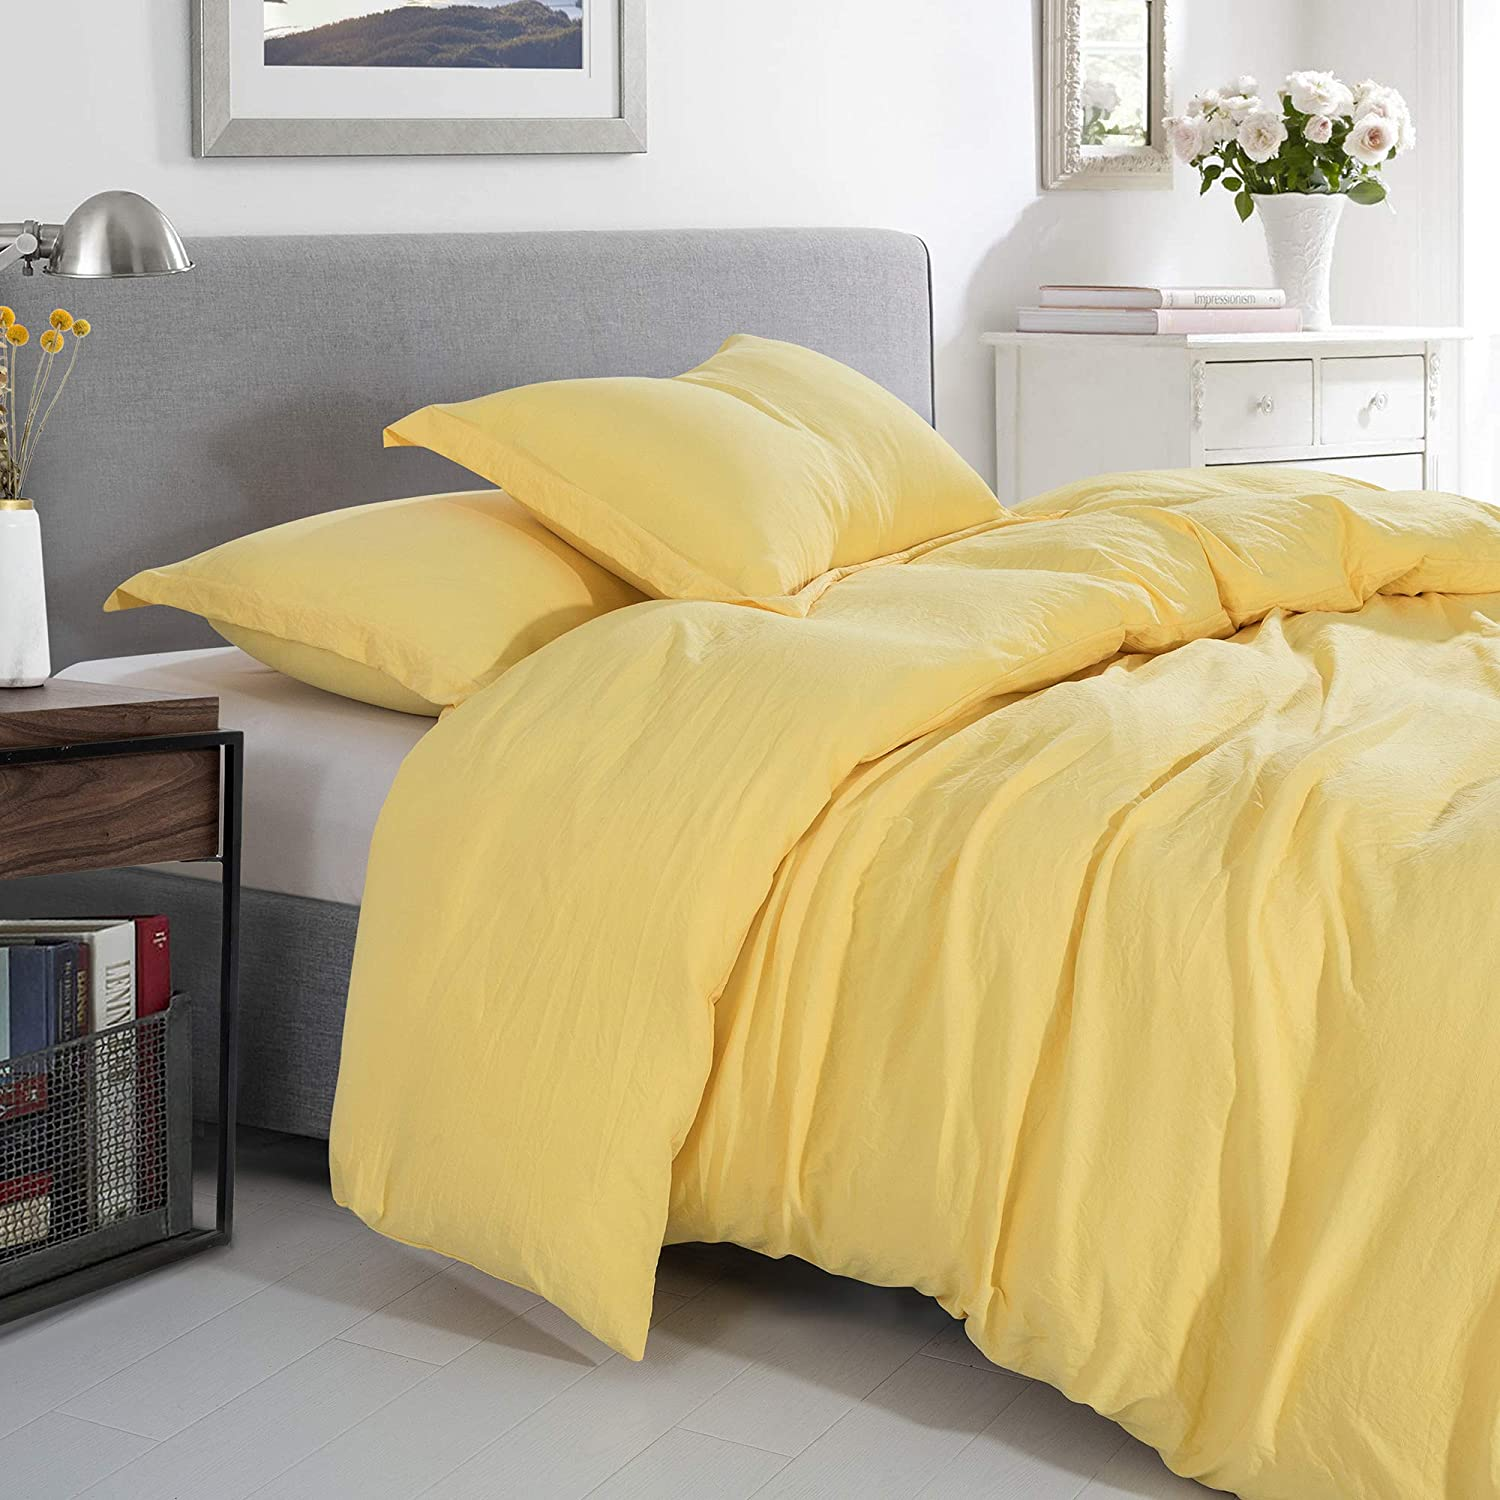 Prewashed Vintage Linen Style Crinkle Duvet Set - Extra Soft, Lightweight, Protective Bed Duvet Cover and Shams for All Season Comfort - Corner Ties and Quick Zip Closure - Full/Queen - Yellow